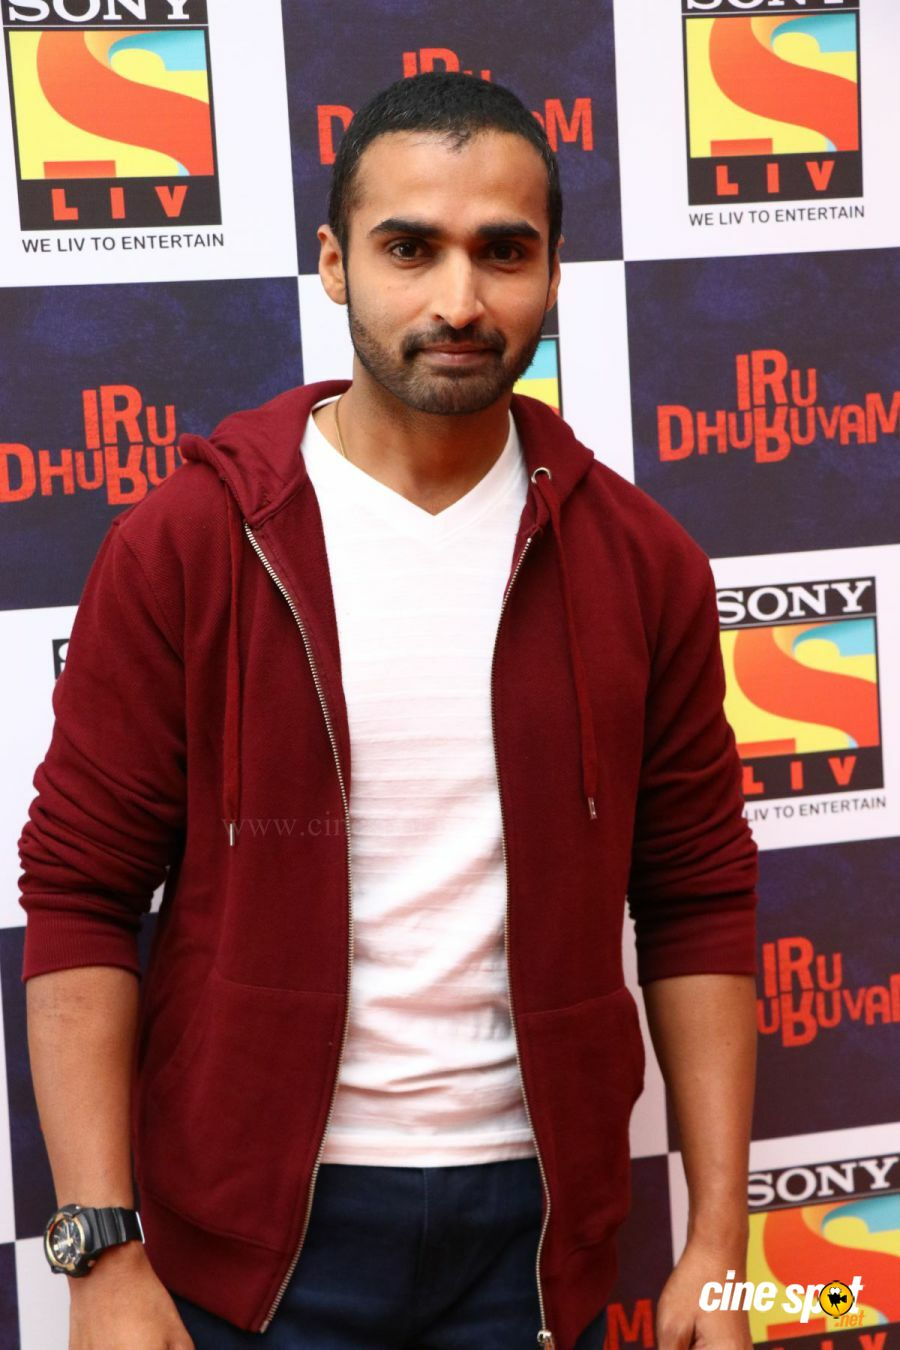 Sony LIV Iru Dhuruvam Web Series Launch (7)